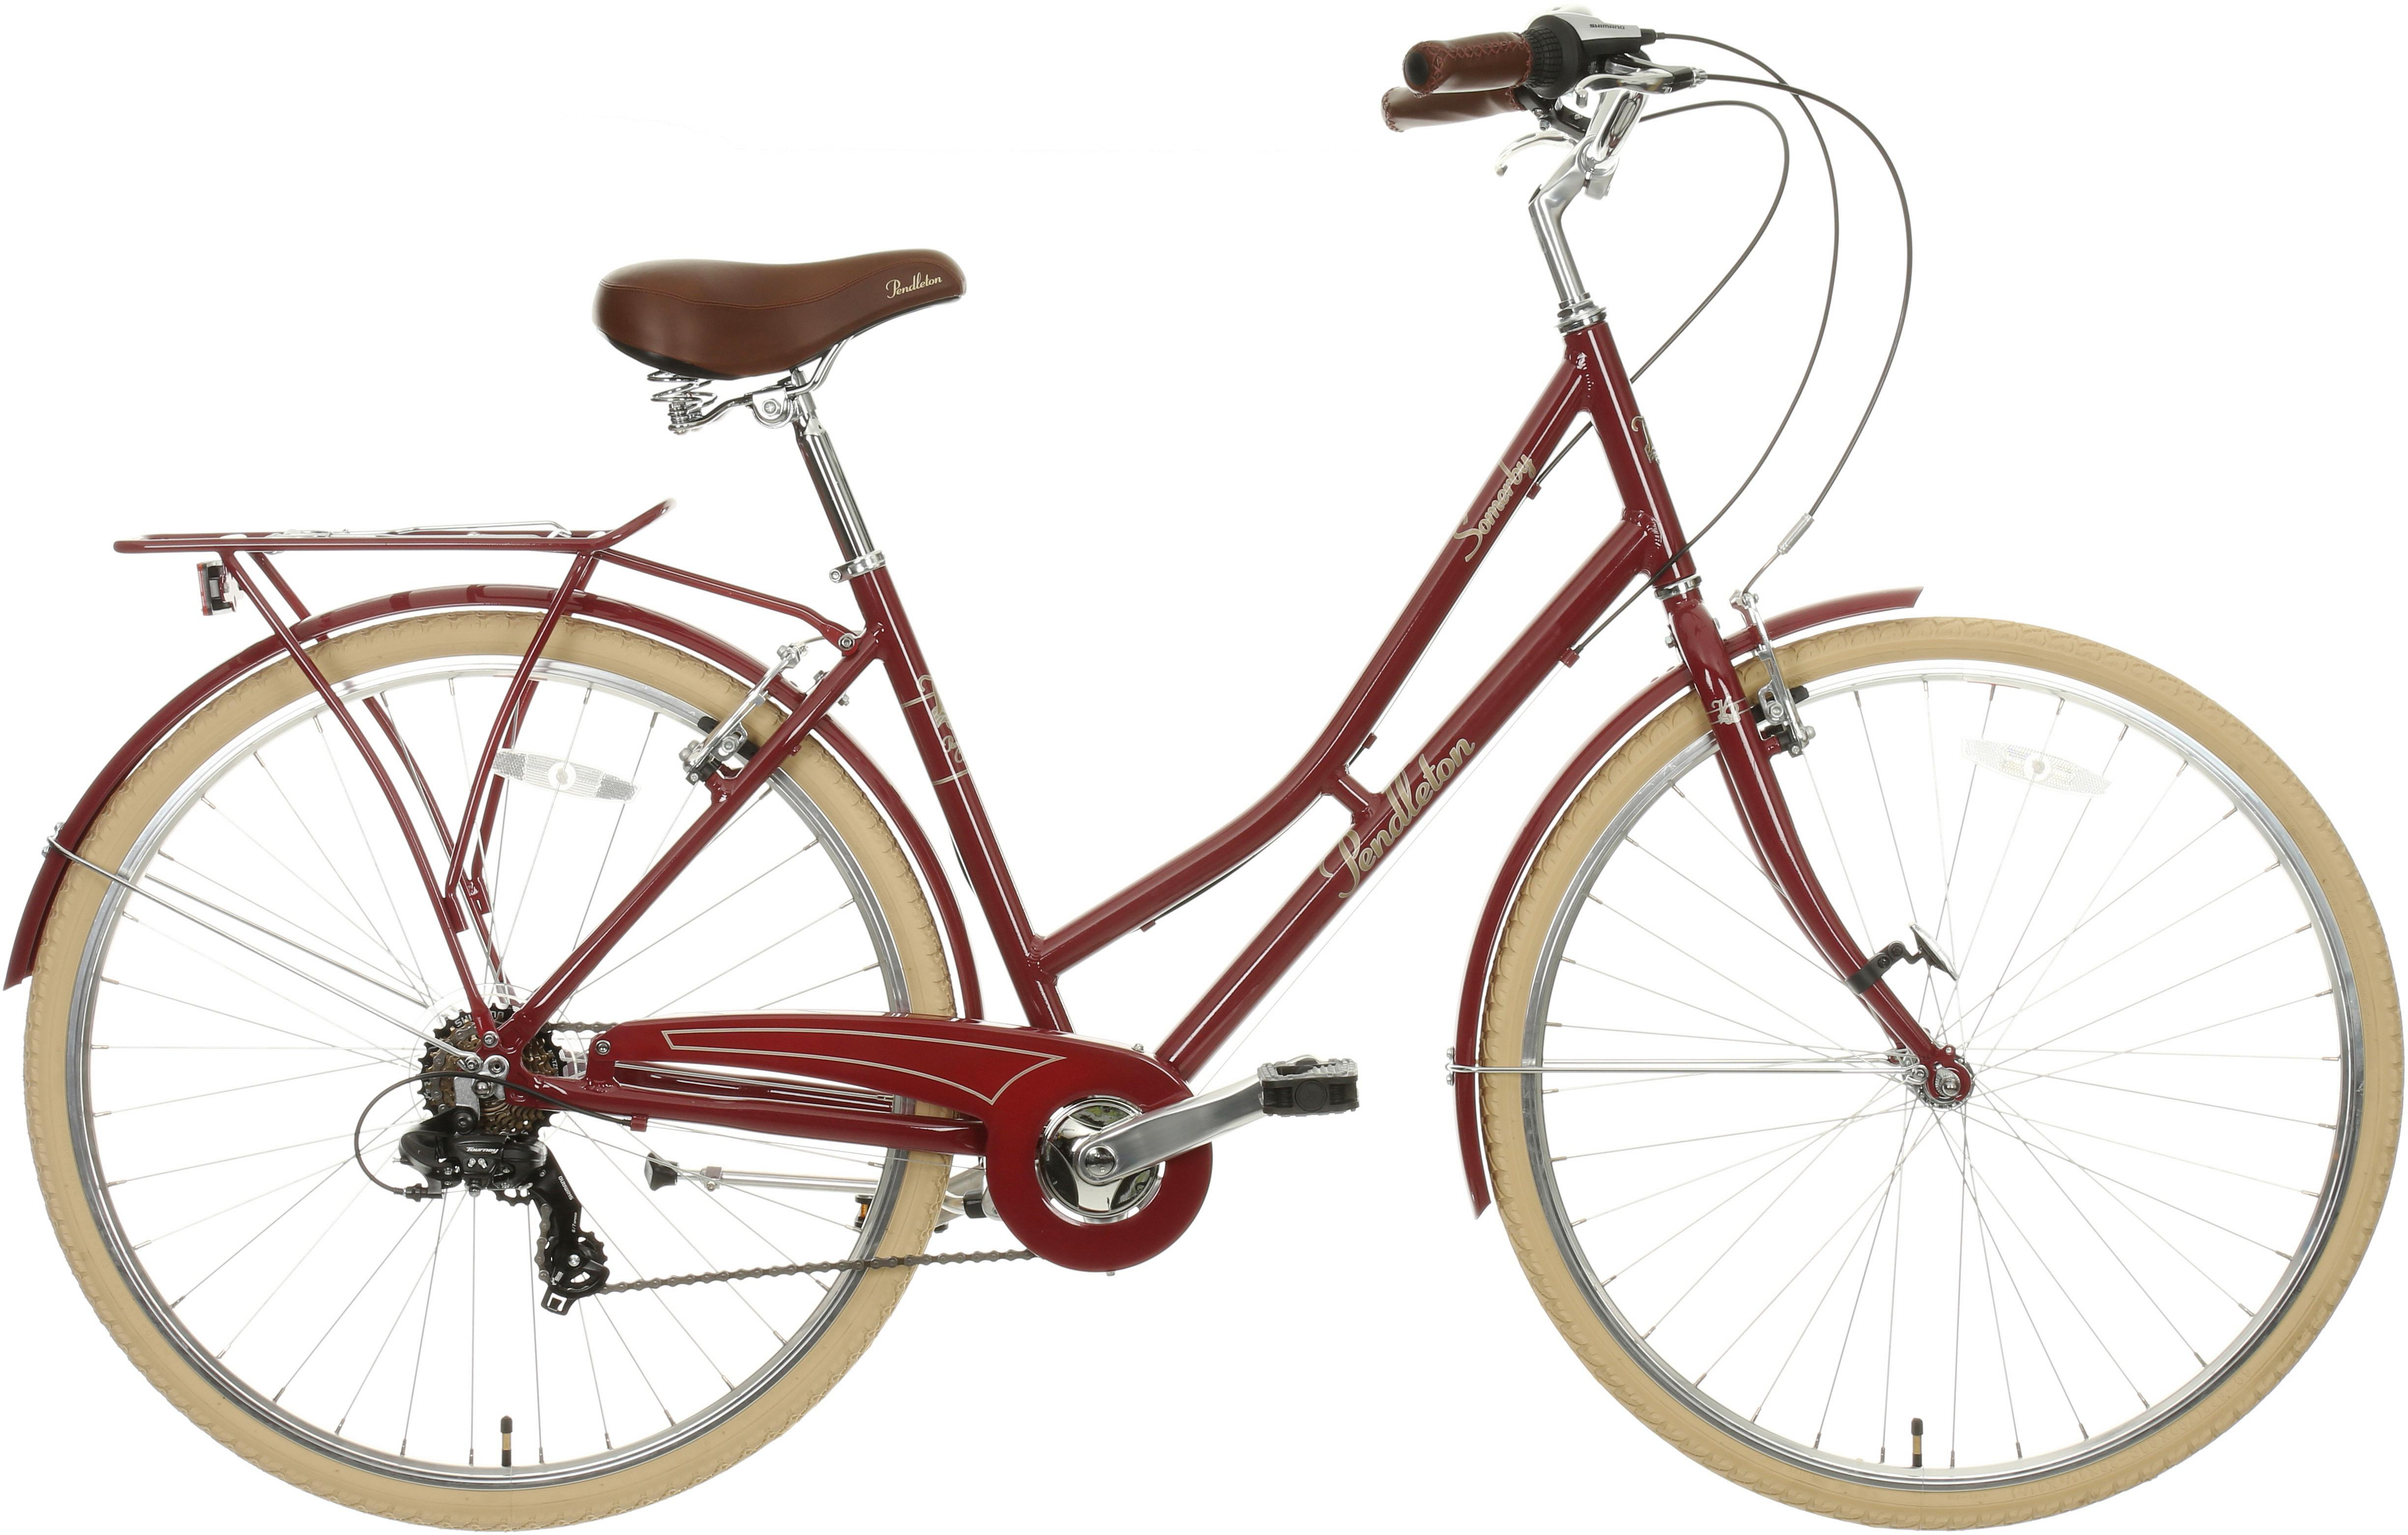 Pendleton Somerby Hybrid Bike - Maroon Red 19 inch